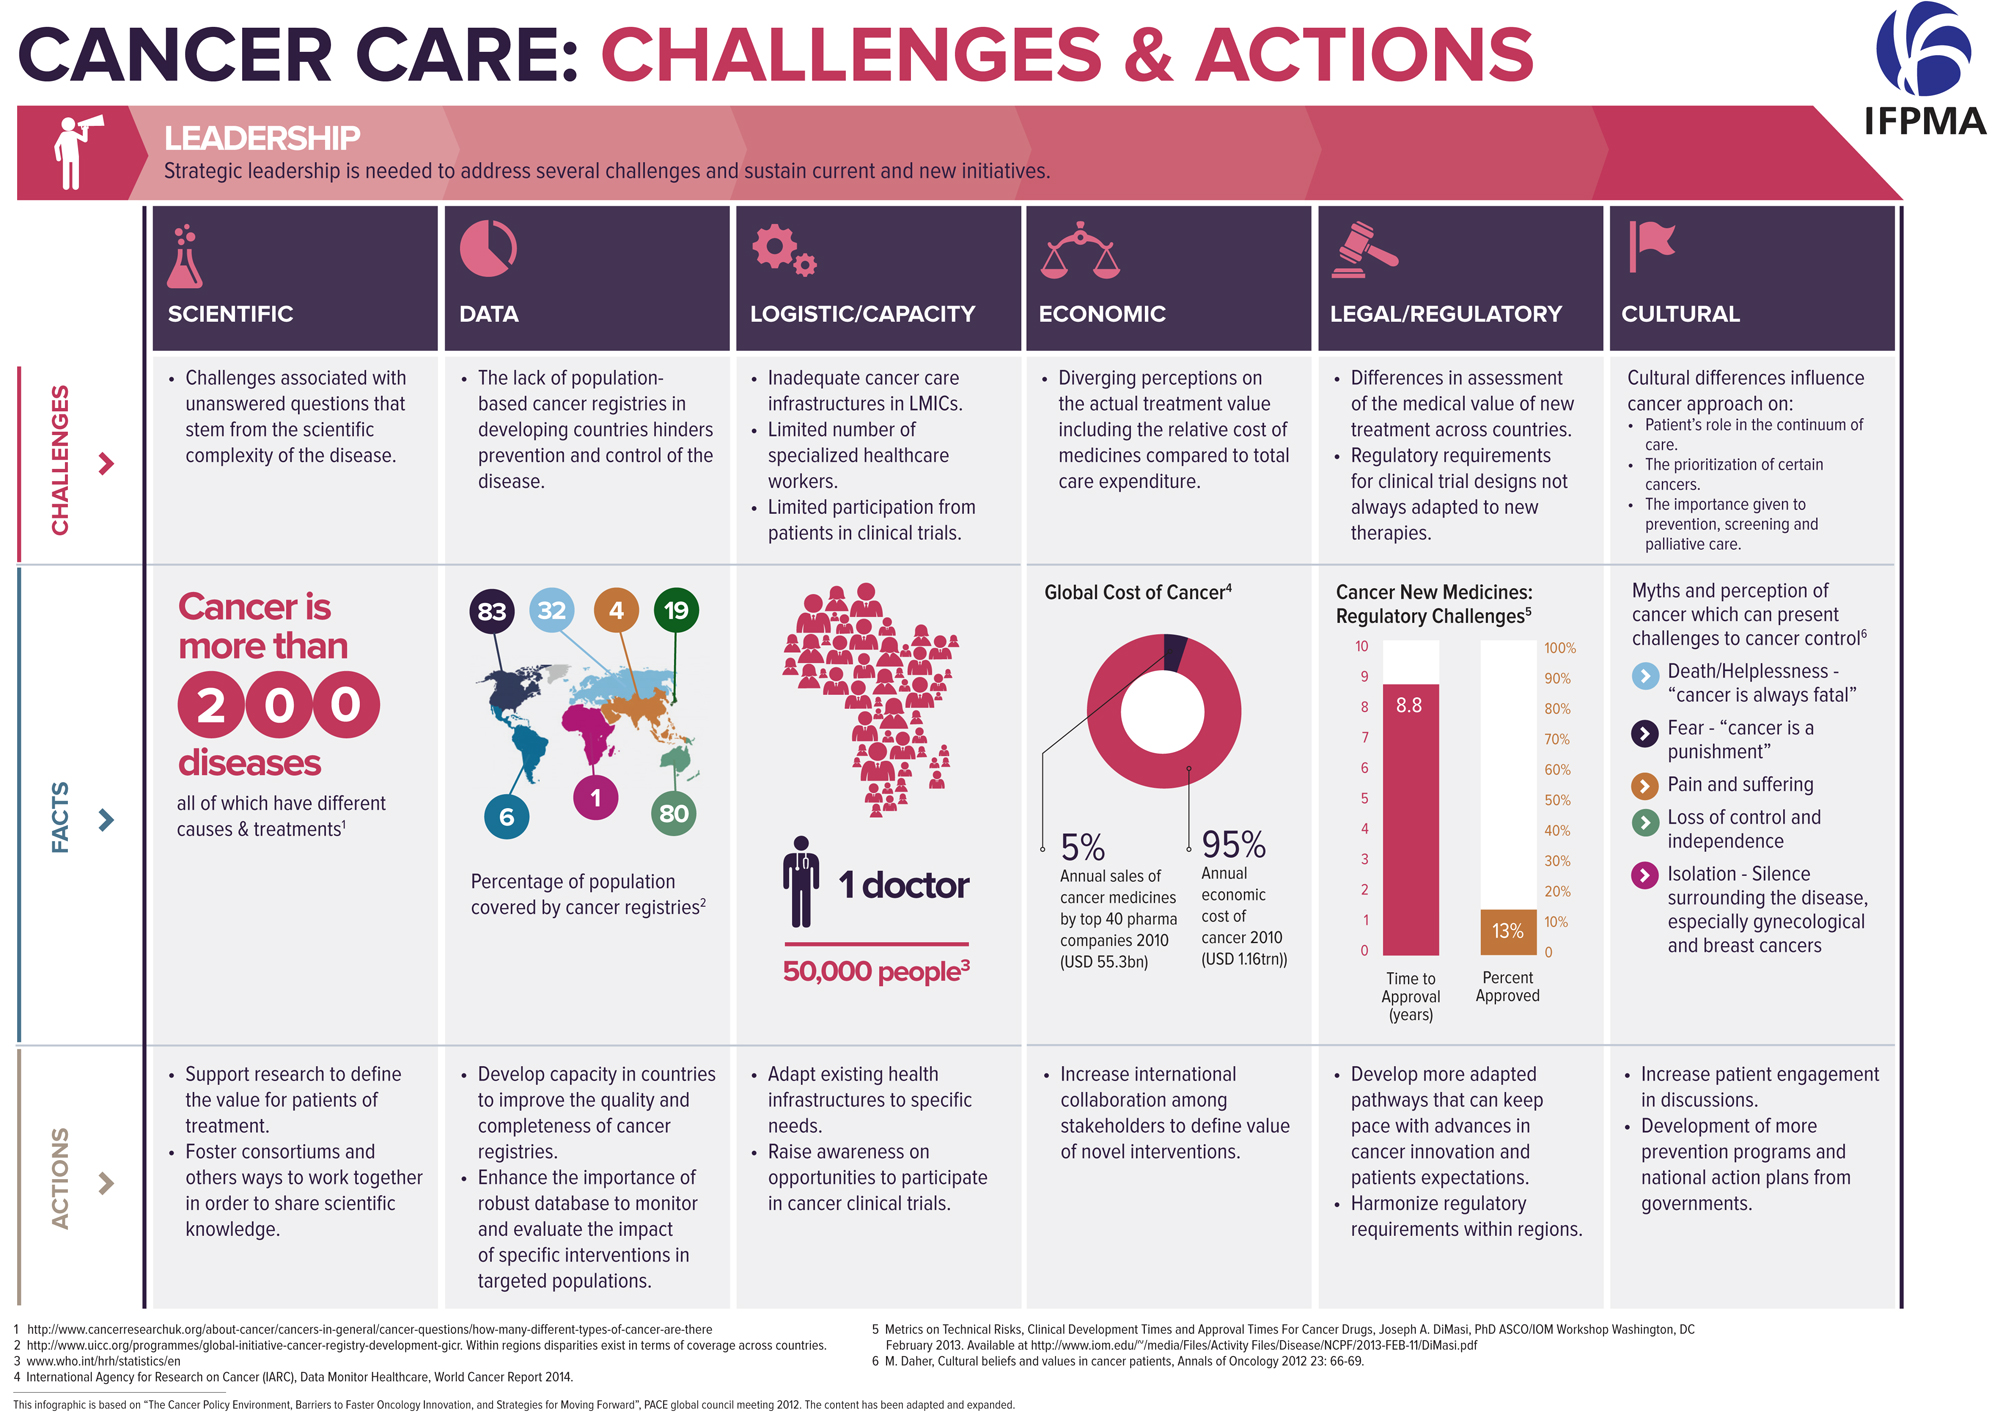 infographic-CancerCare-vF